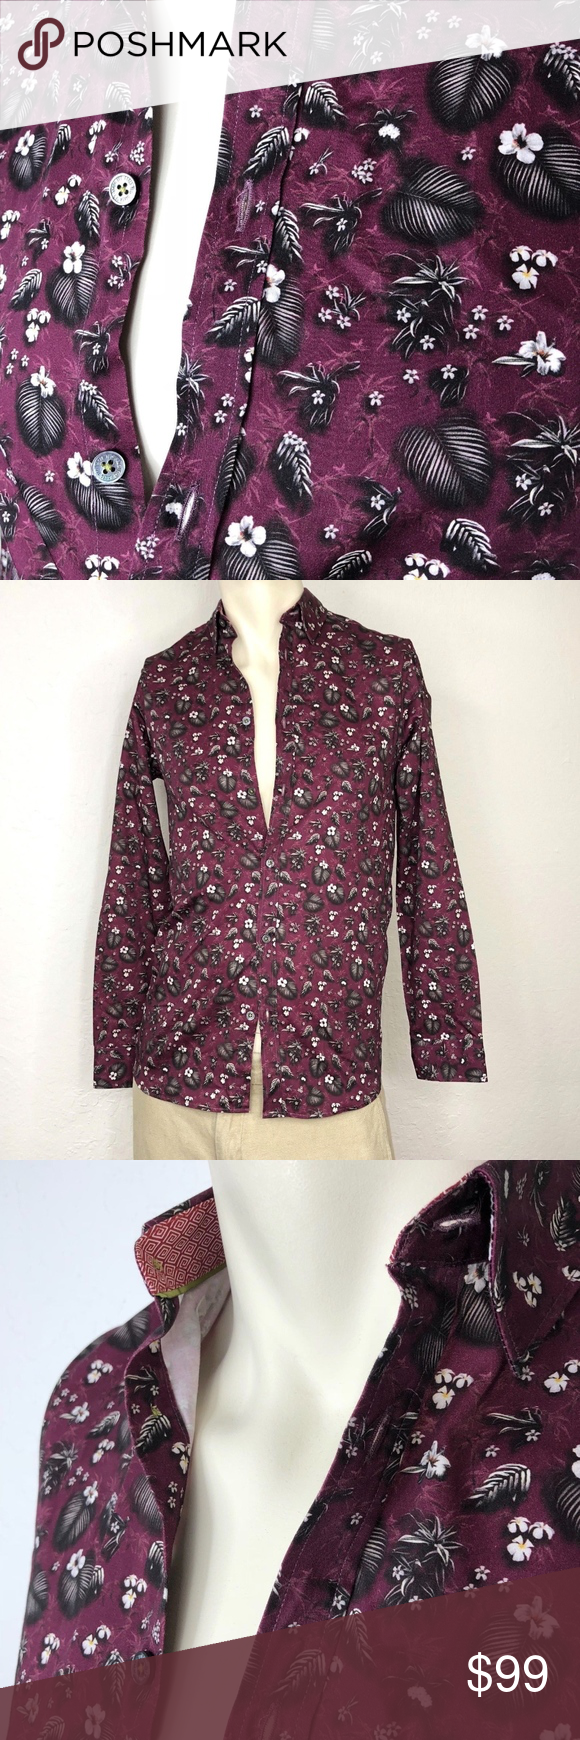 5268982c Ted Baker Floral Hawaiia Long Sleeve Cotton Shirt Ted Baker Mens Floral  Hawaiian Plumeria Long Sleeve 100% Cotton Button Up Slim Fit Shirt, Purple  Black ...